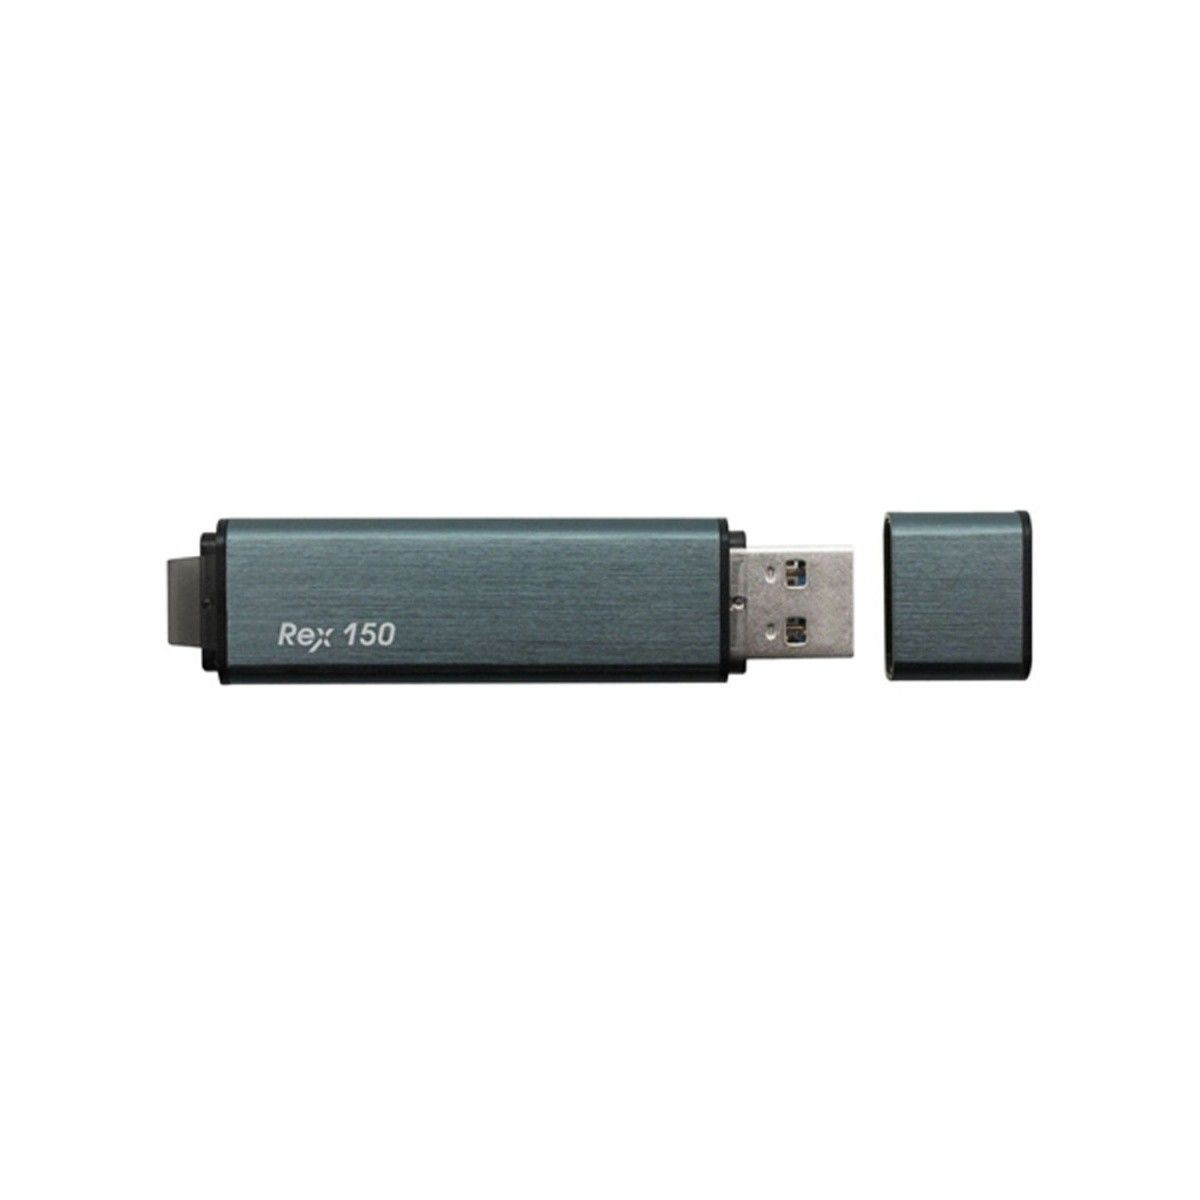 Pretec i-Disk REX150 - 64GB - USB 3.0 SuperSpeed (up to 120MB/s)